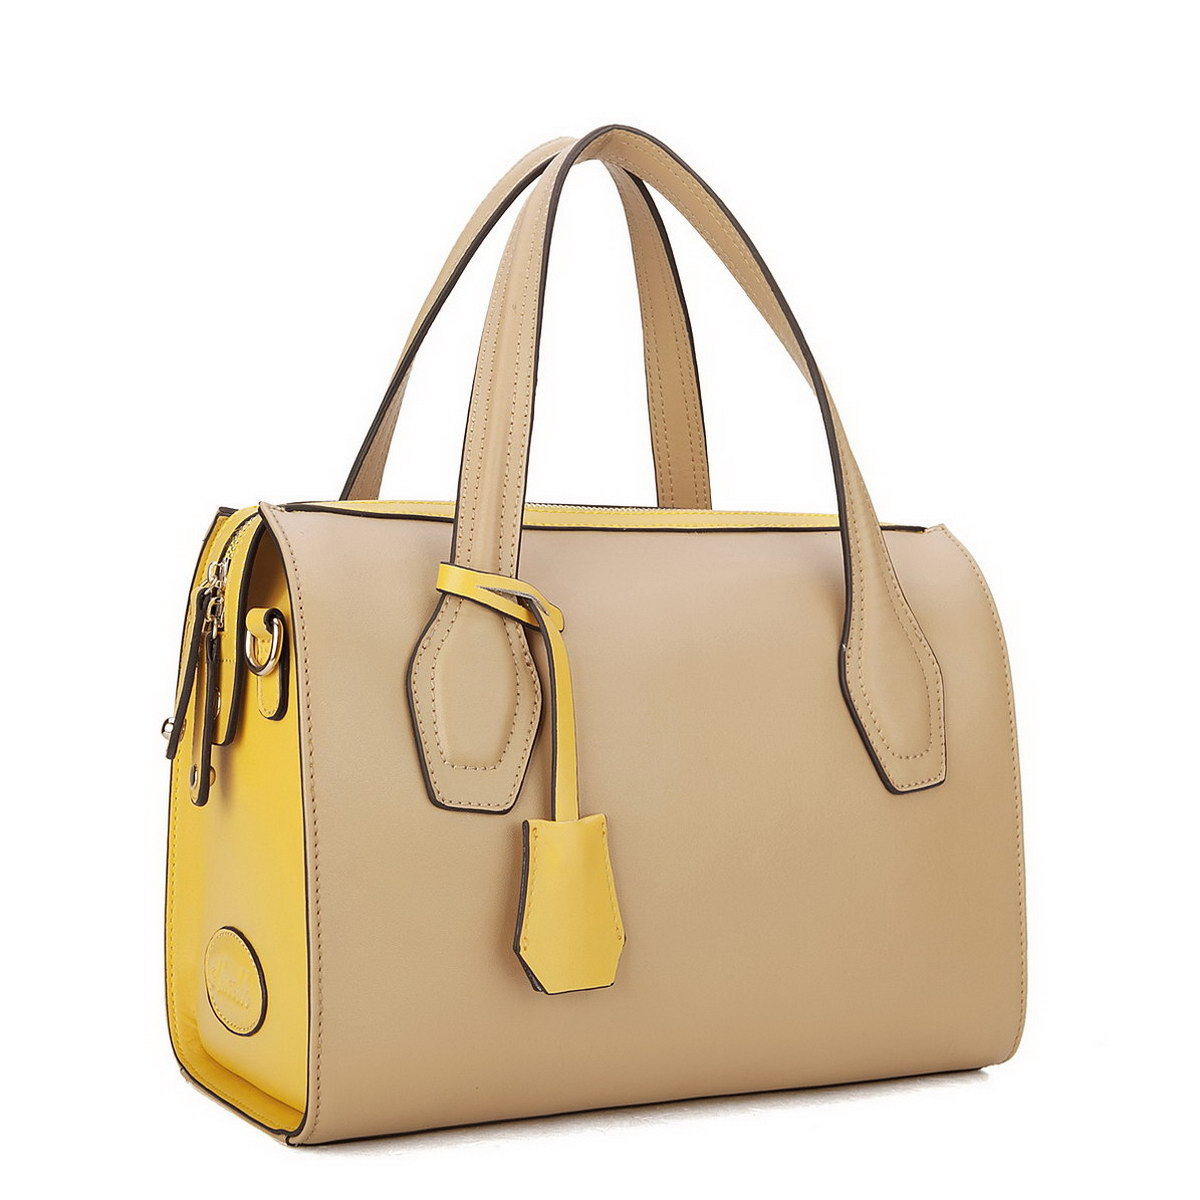 Home > Women s Bags > Tote Bags > Inspired leather handbags Apricot